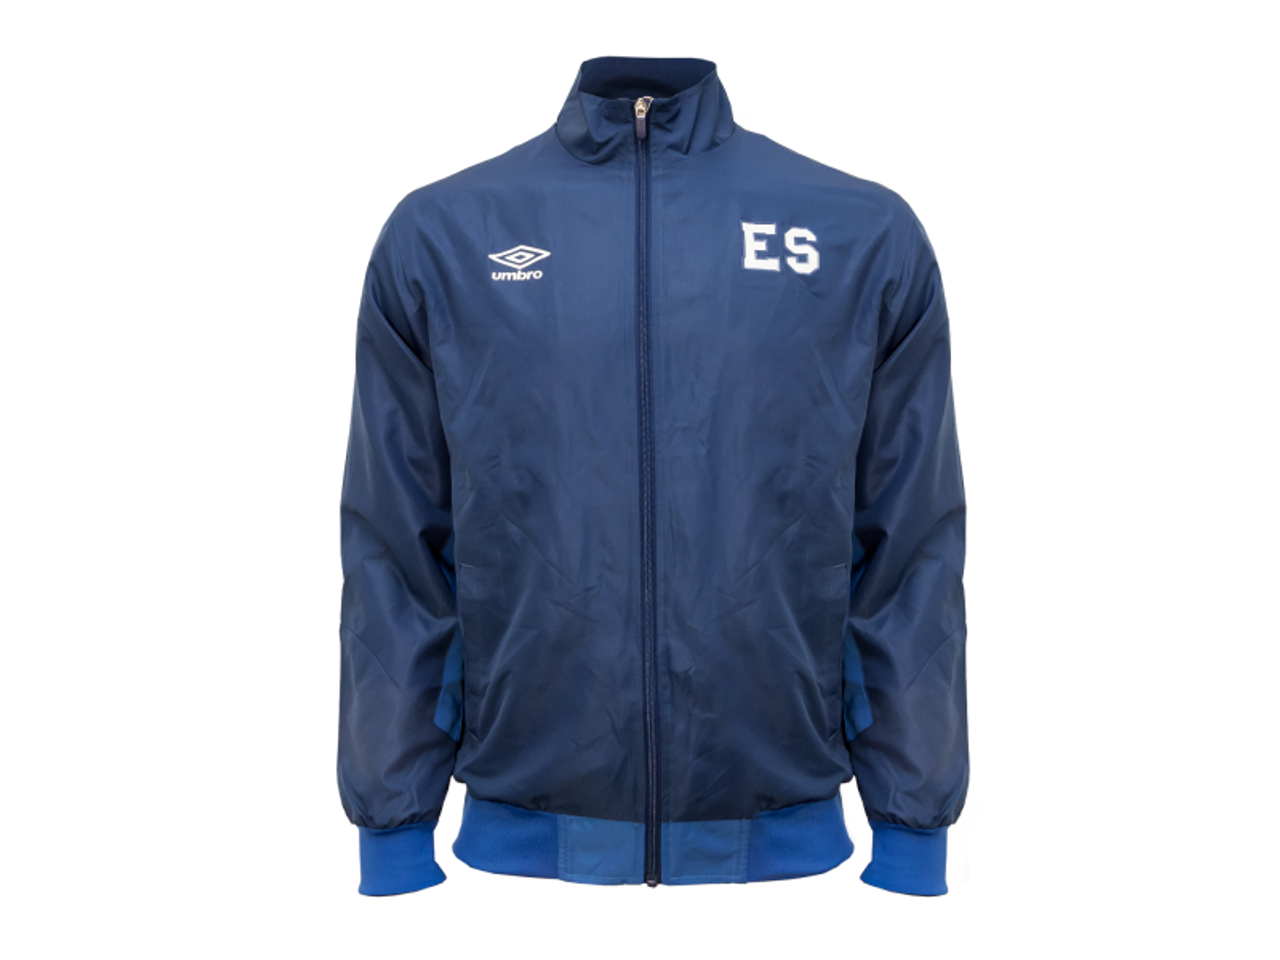 1dc2b32f33f UMBRO El SALVADOR 2019 Training Jacket blue - Soccer Plus